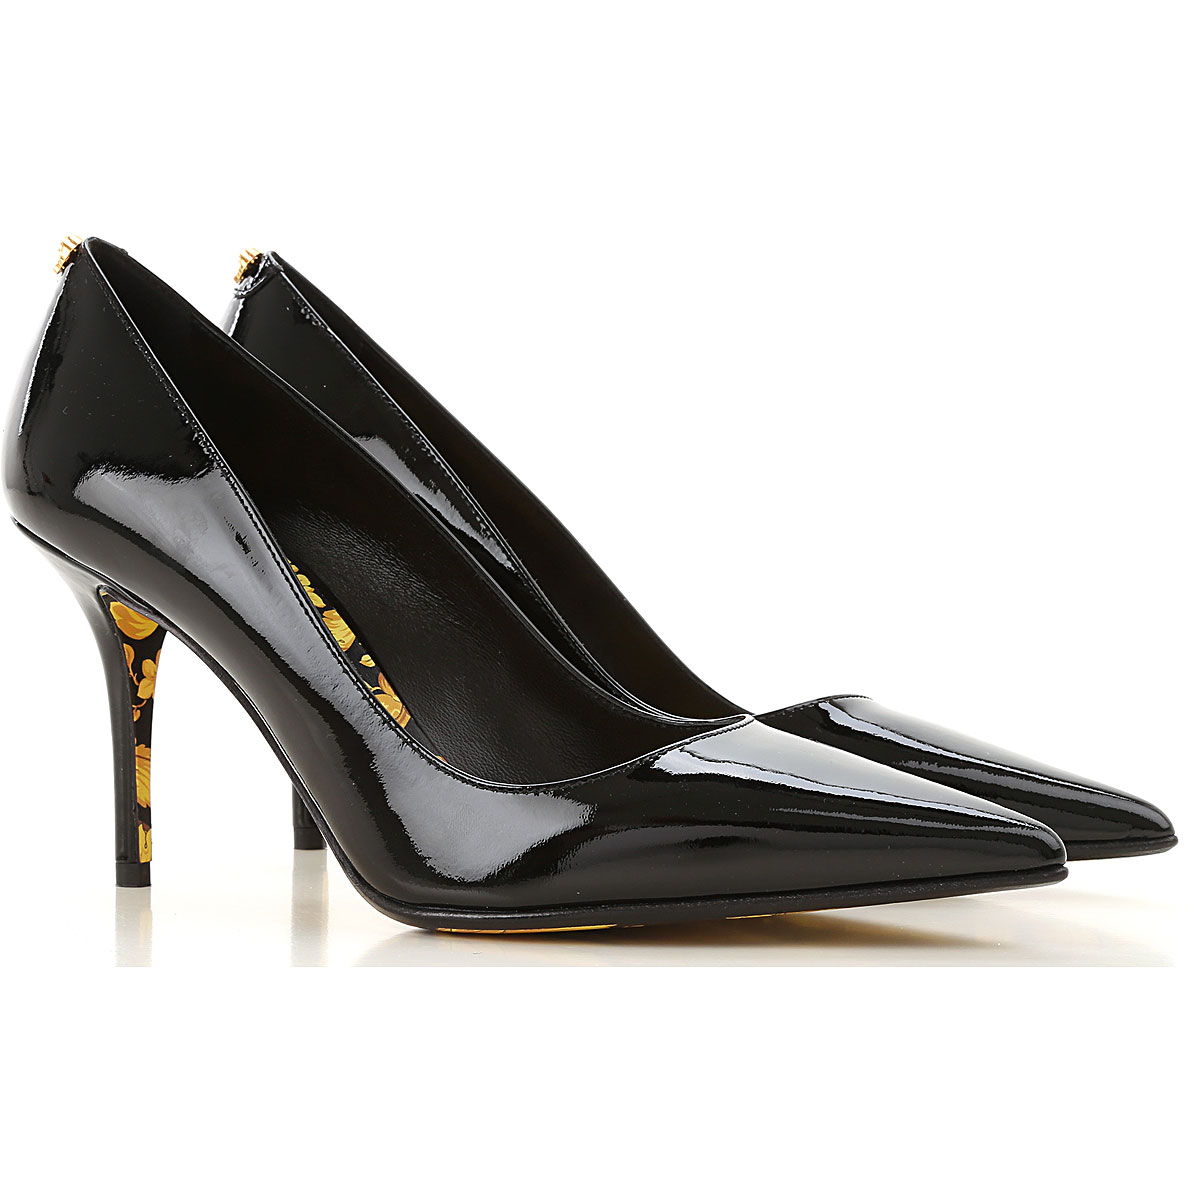 Gianni Versace Pumps & High Heels for Women On Sale, Black, Patent, 2019, 7 8 9